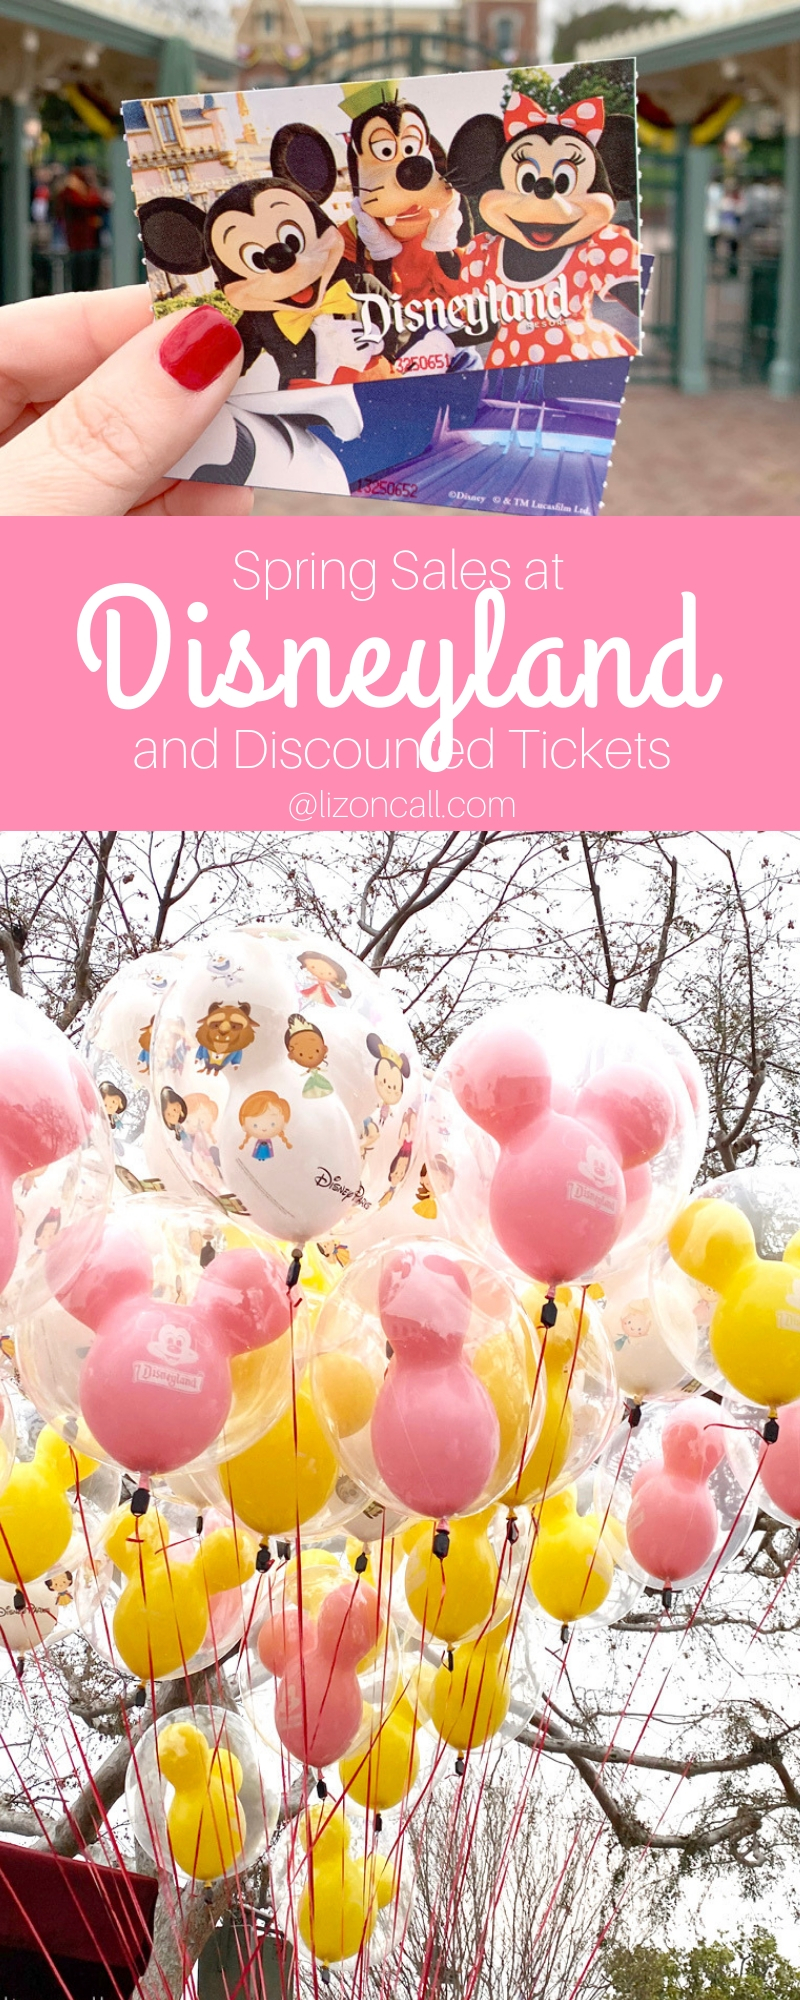 titled pinnable image of Disney tickets and spring colored mickey balloons